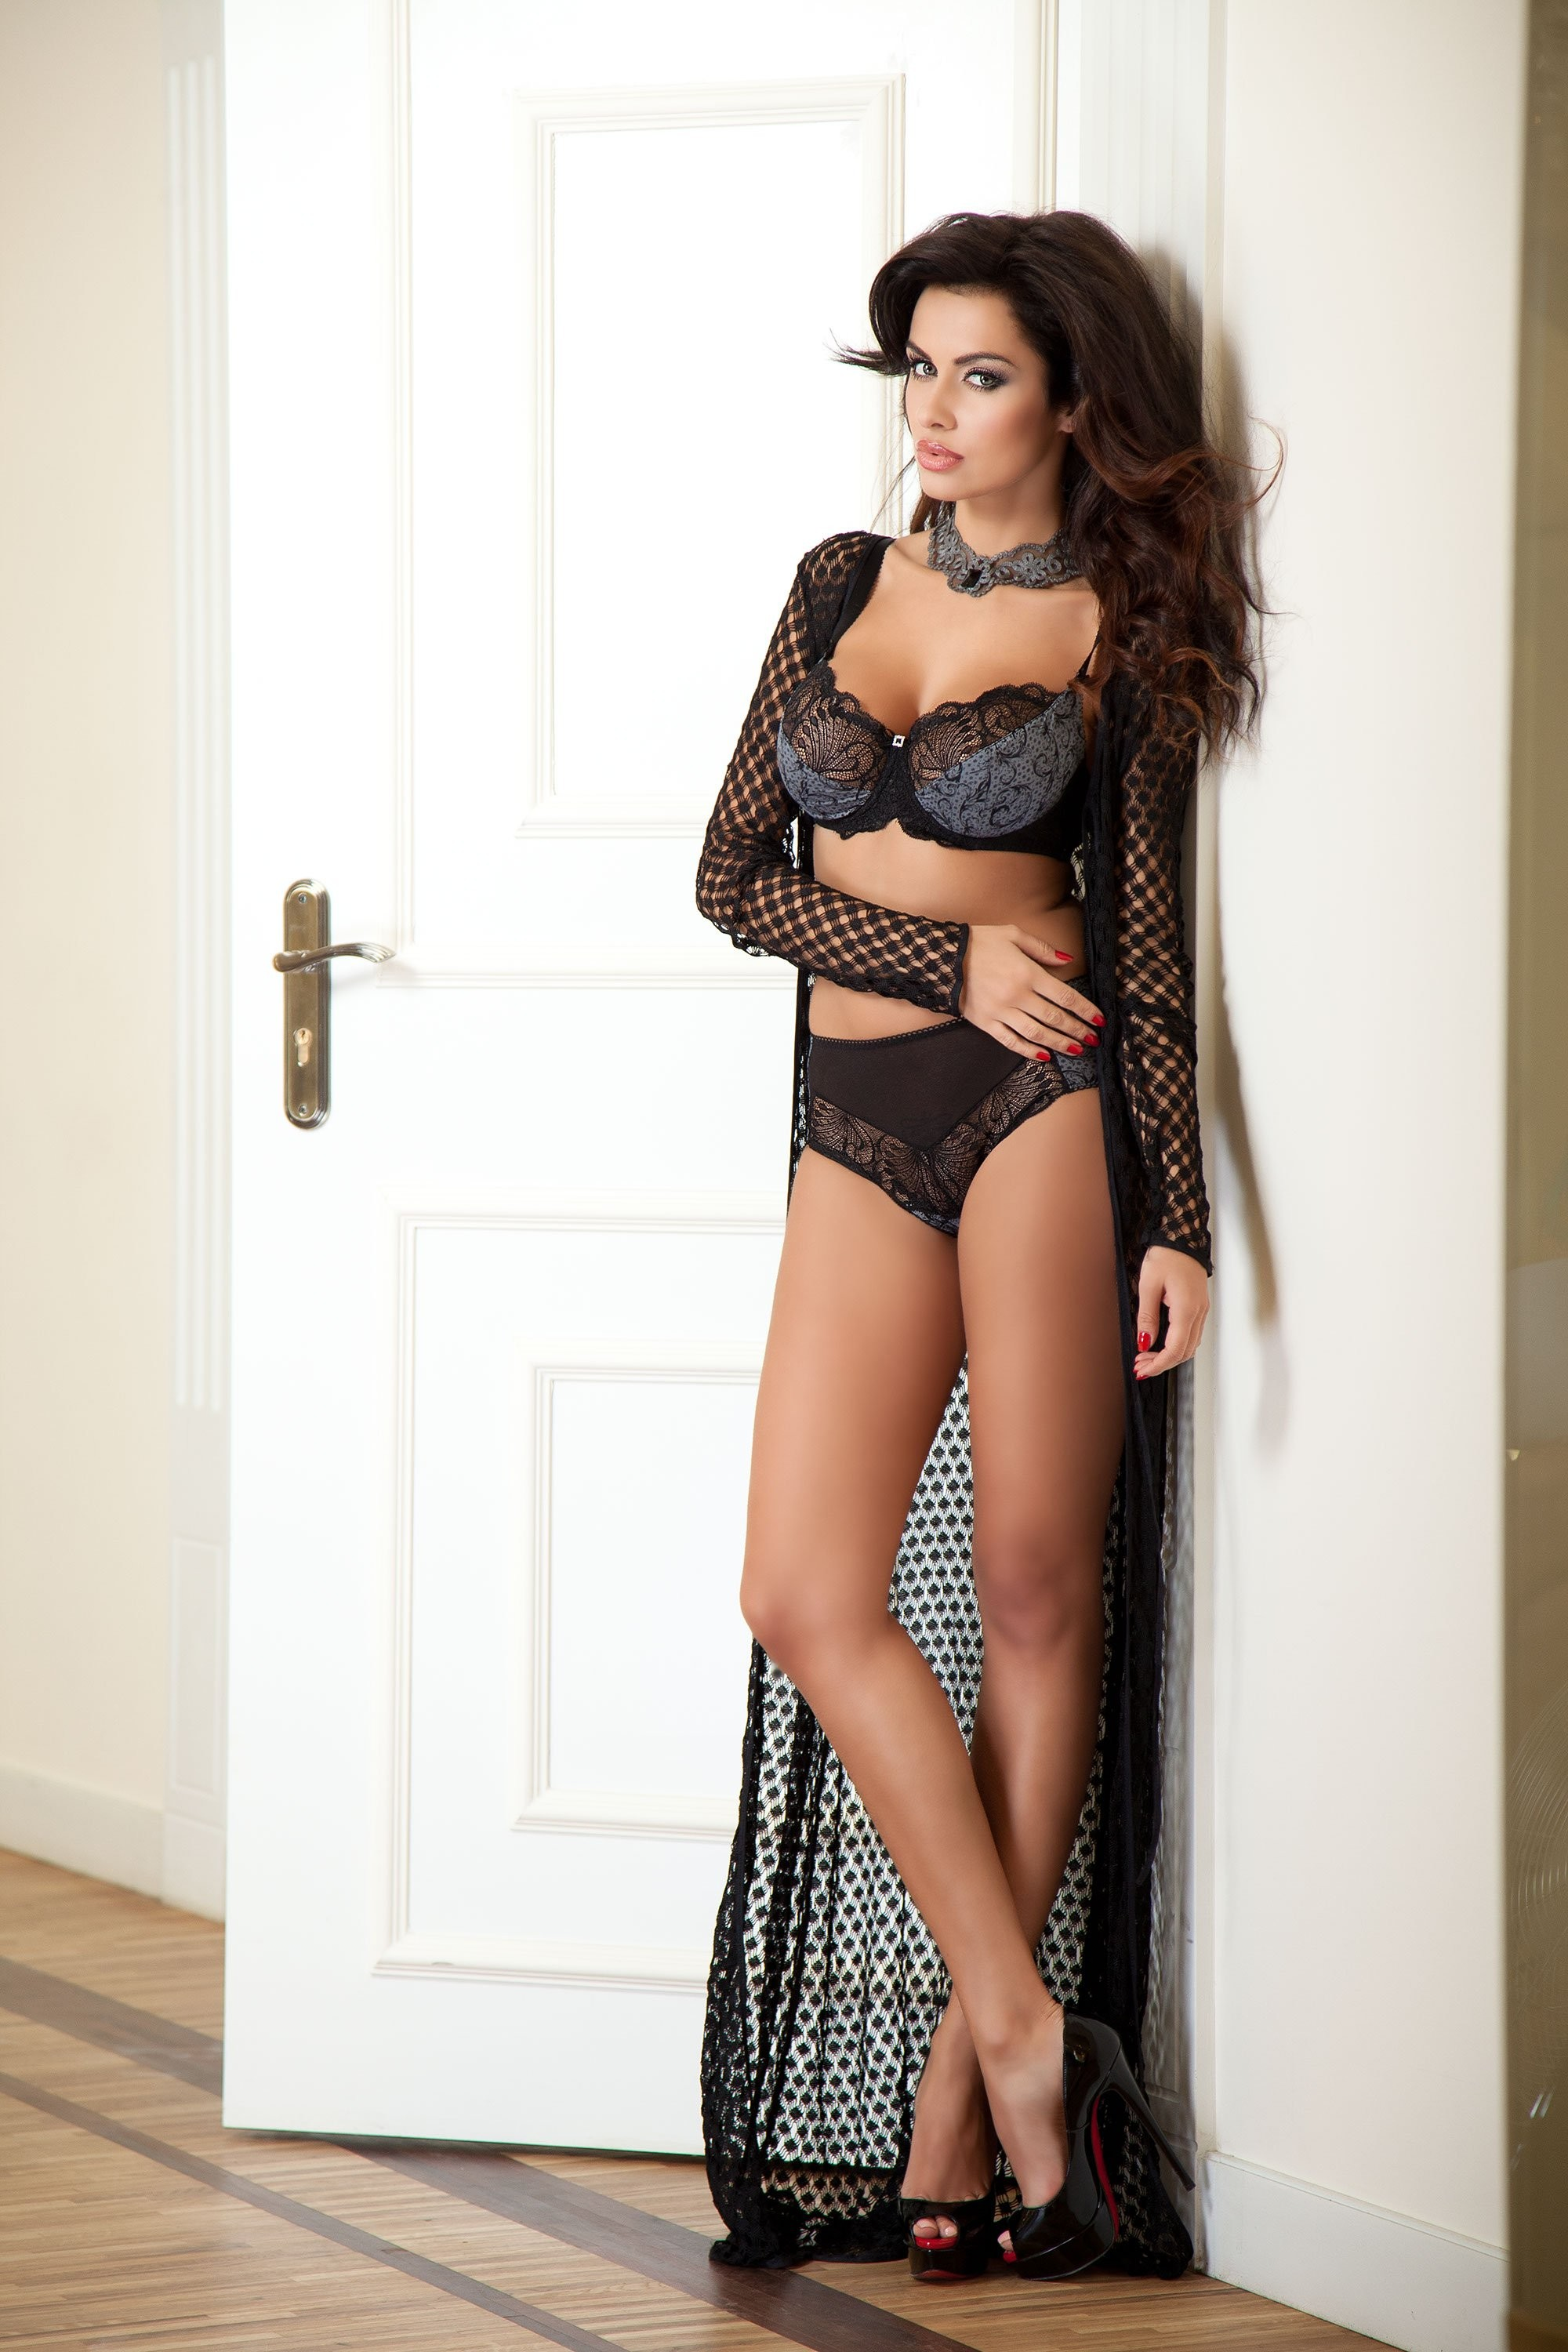 hot girl in lingerie - Natalia Siwiec